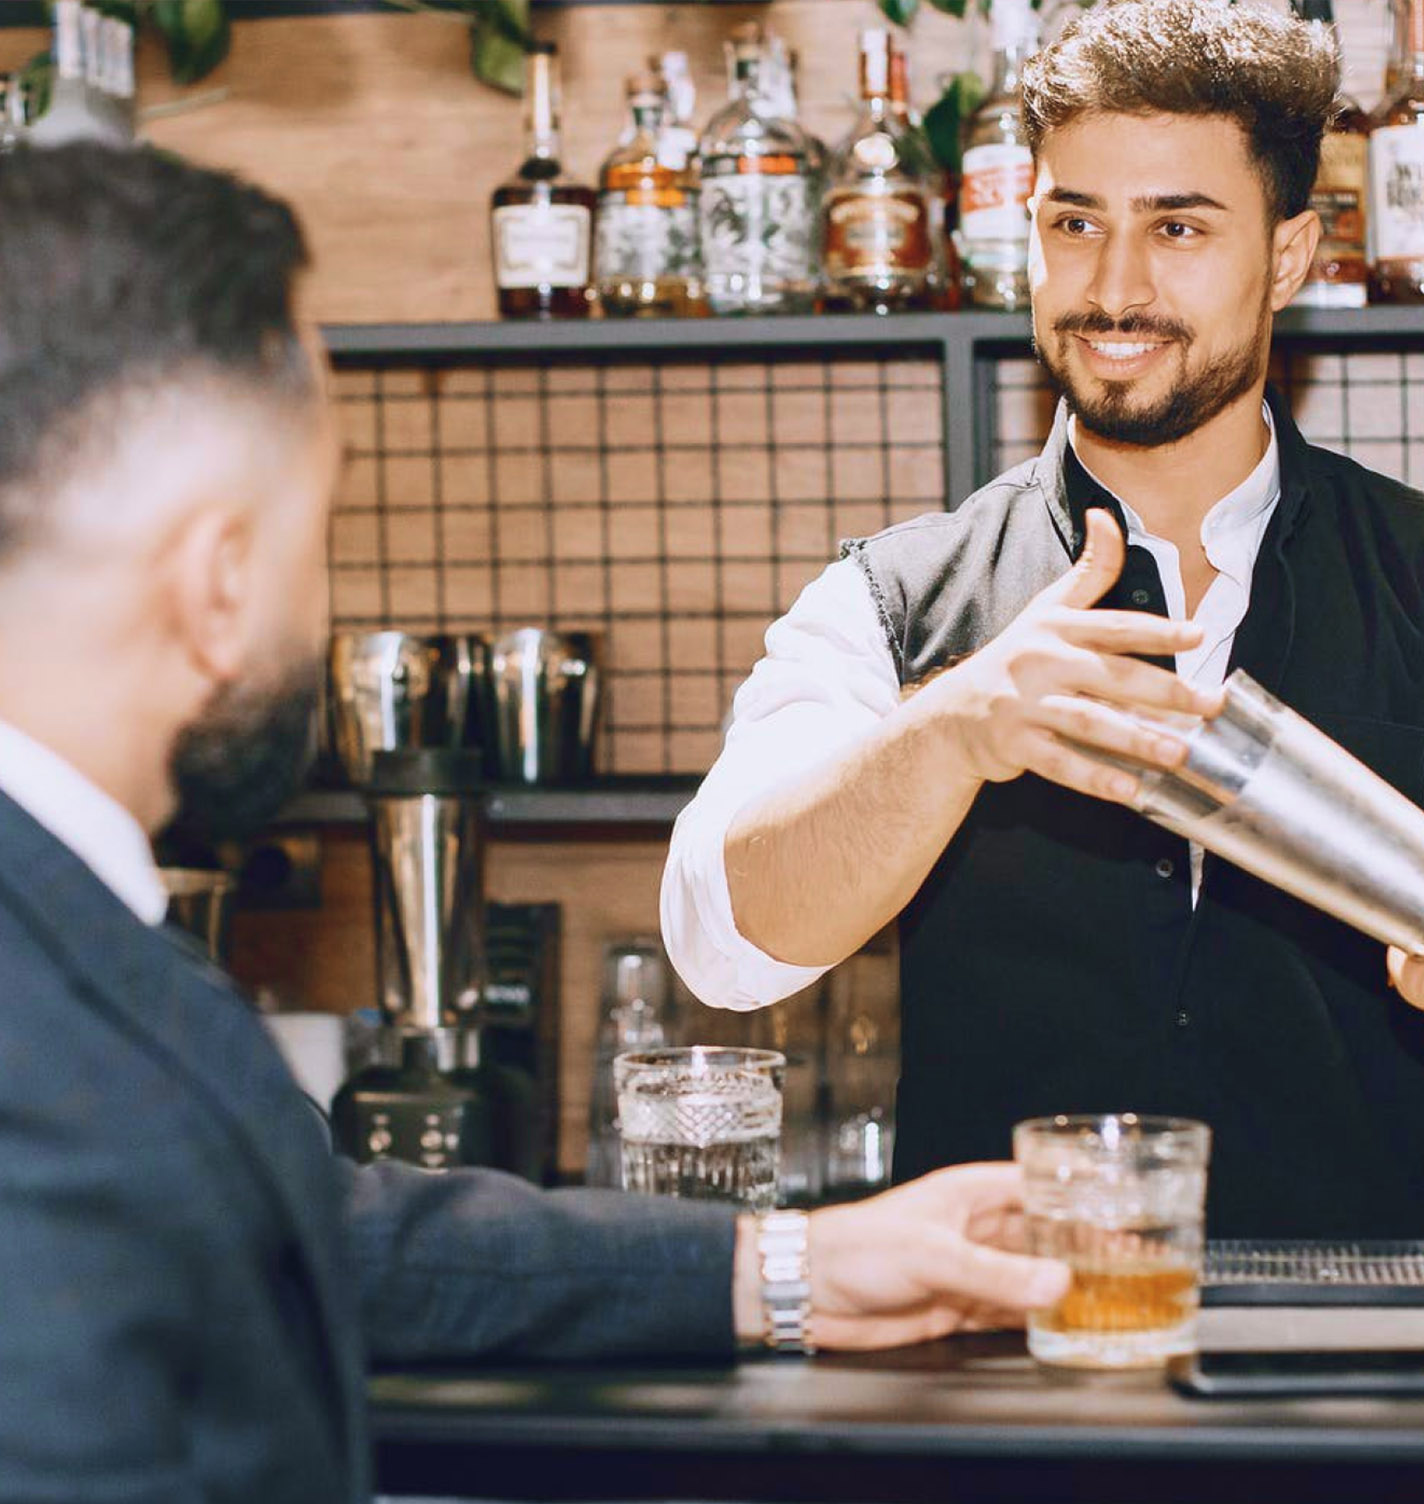 Bartender shaking cocktail with customer blurred in foreground wearing a suit holding cocktail on bar